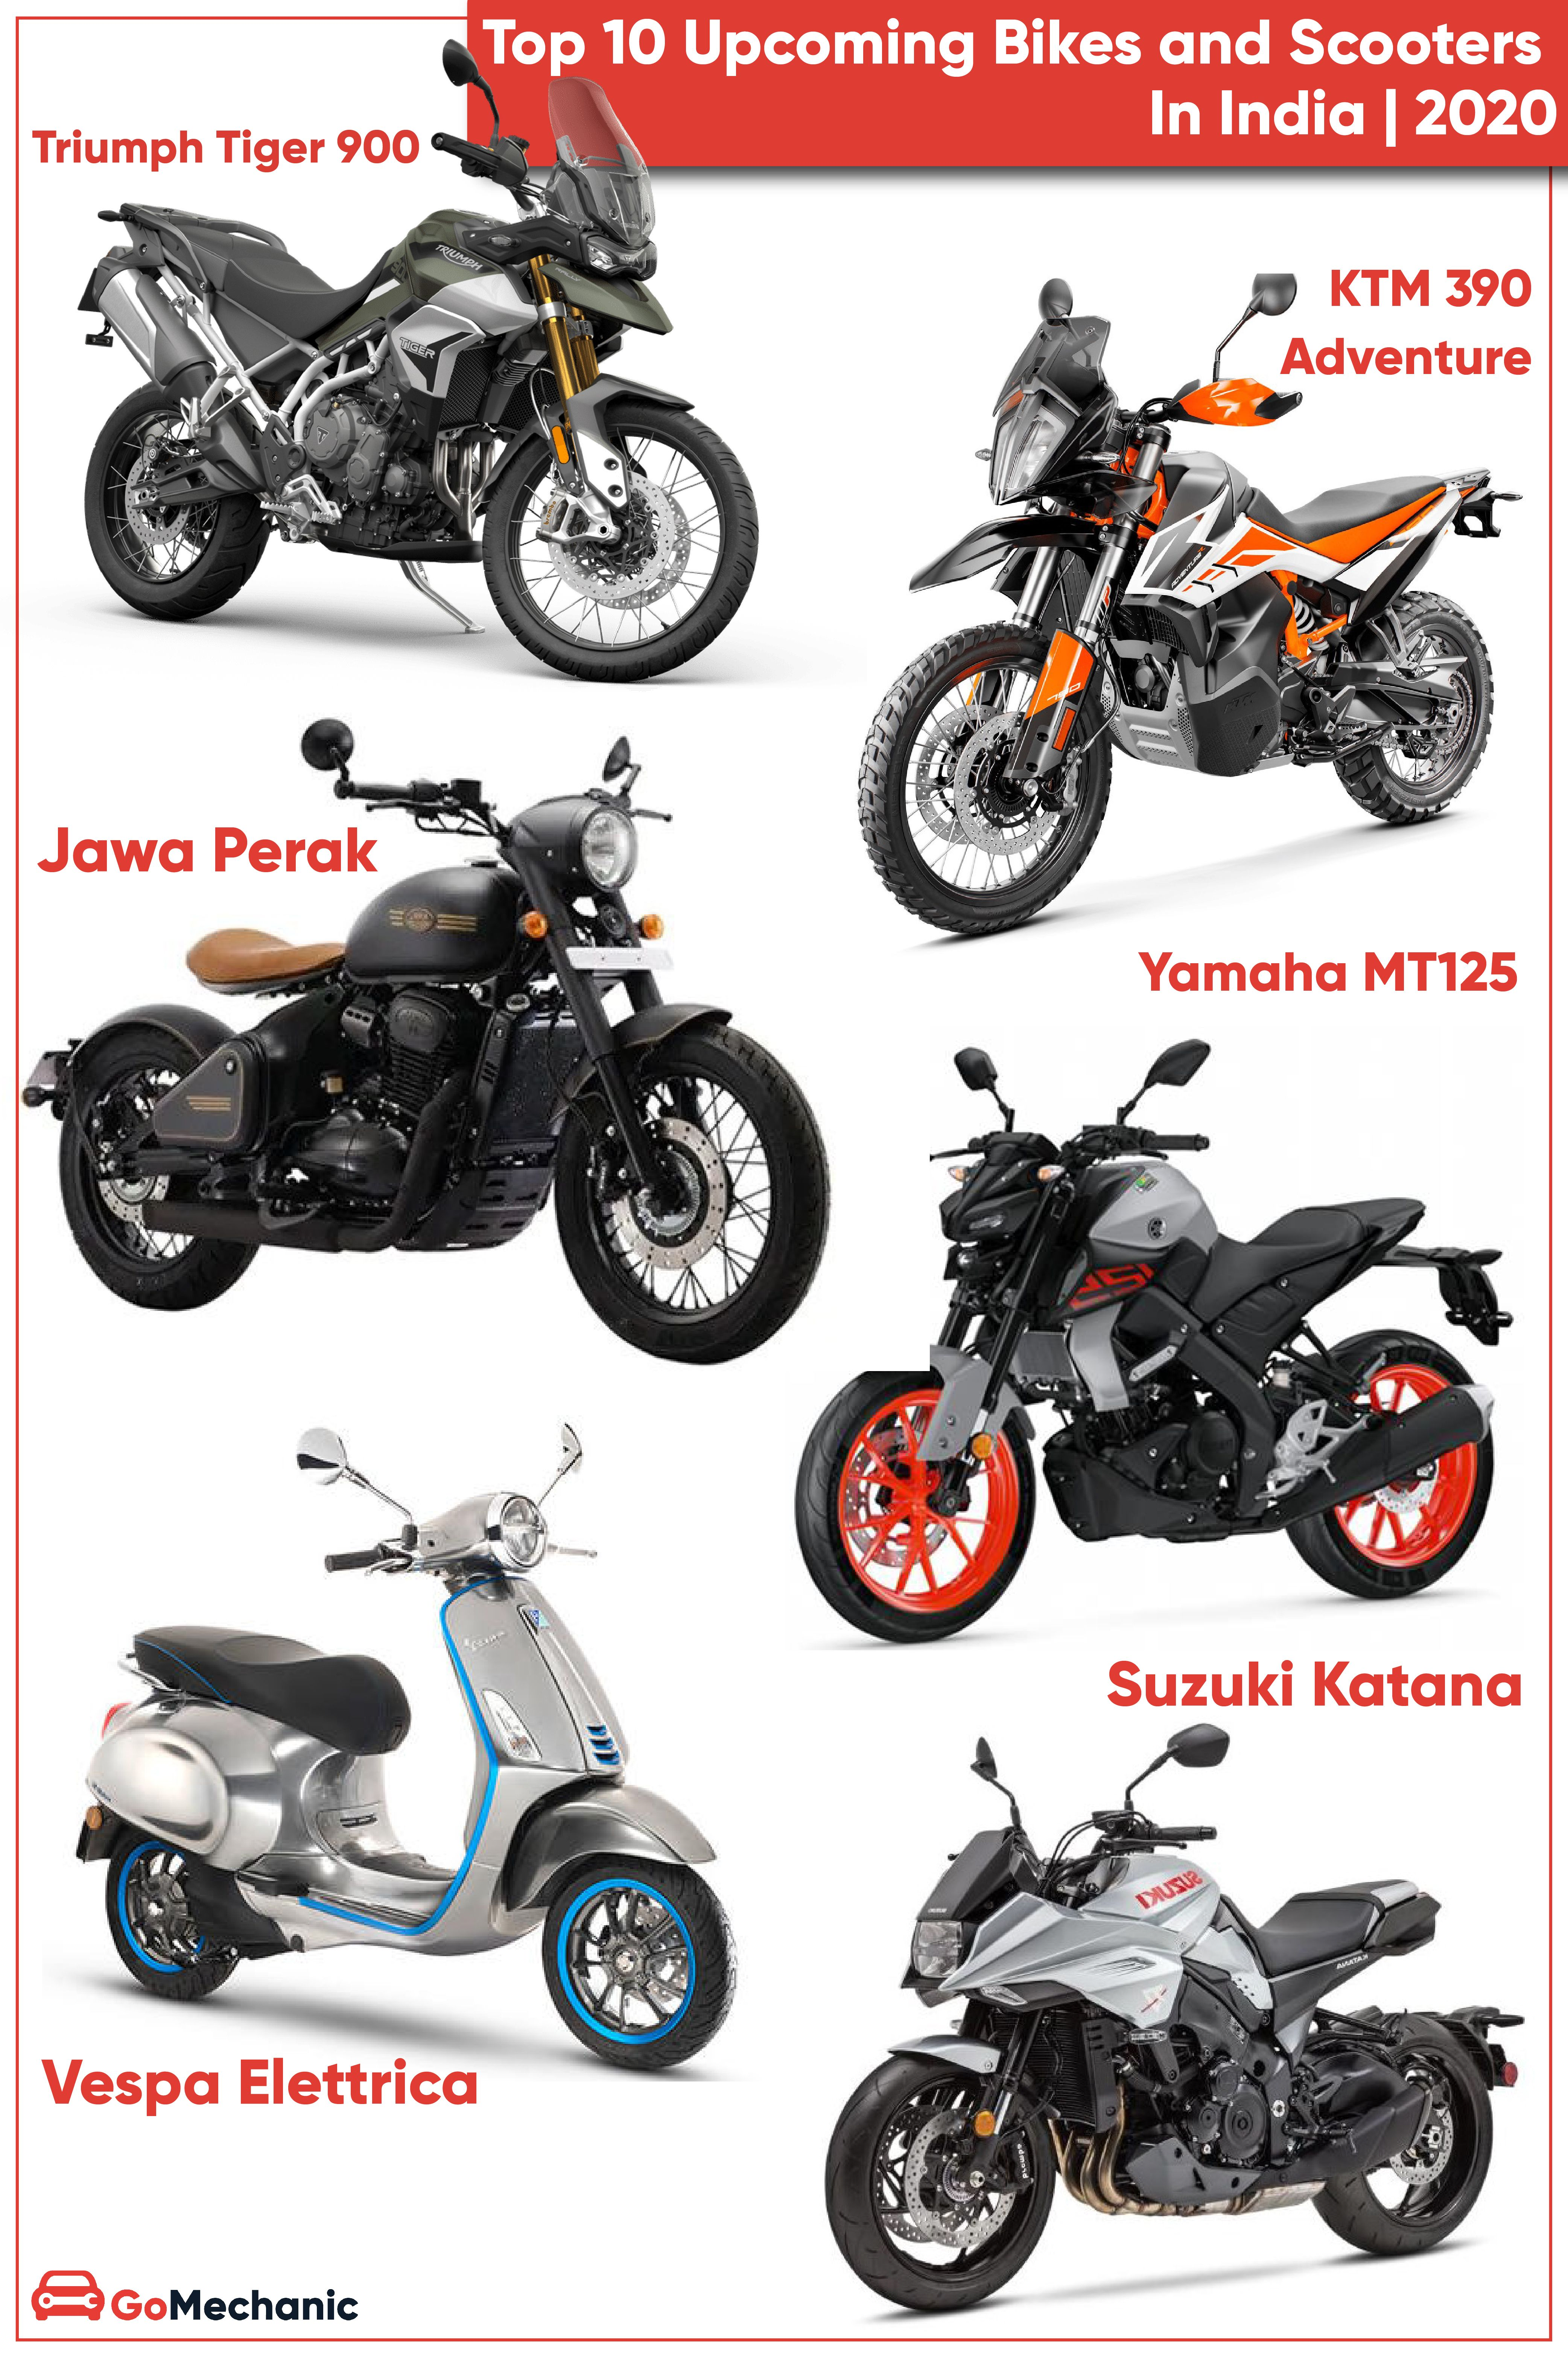 10 Upcoming Bikes And Scooters In India In The 2020 In 2020 Bike